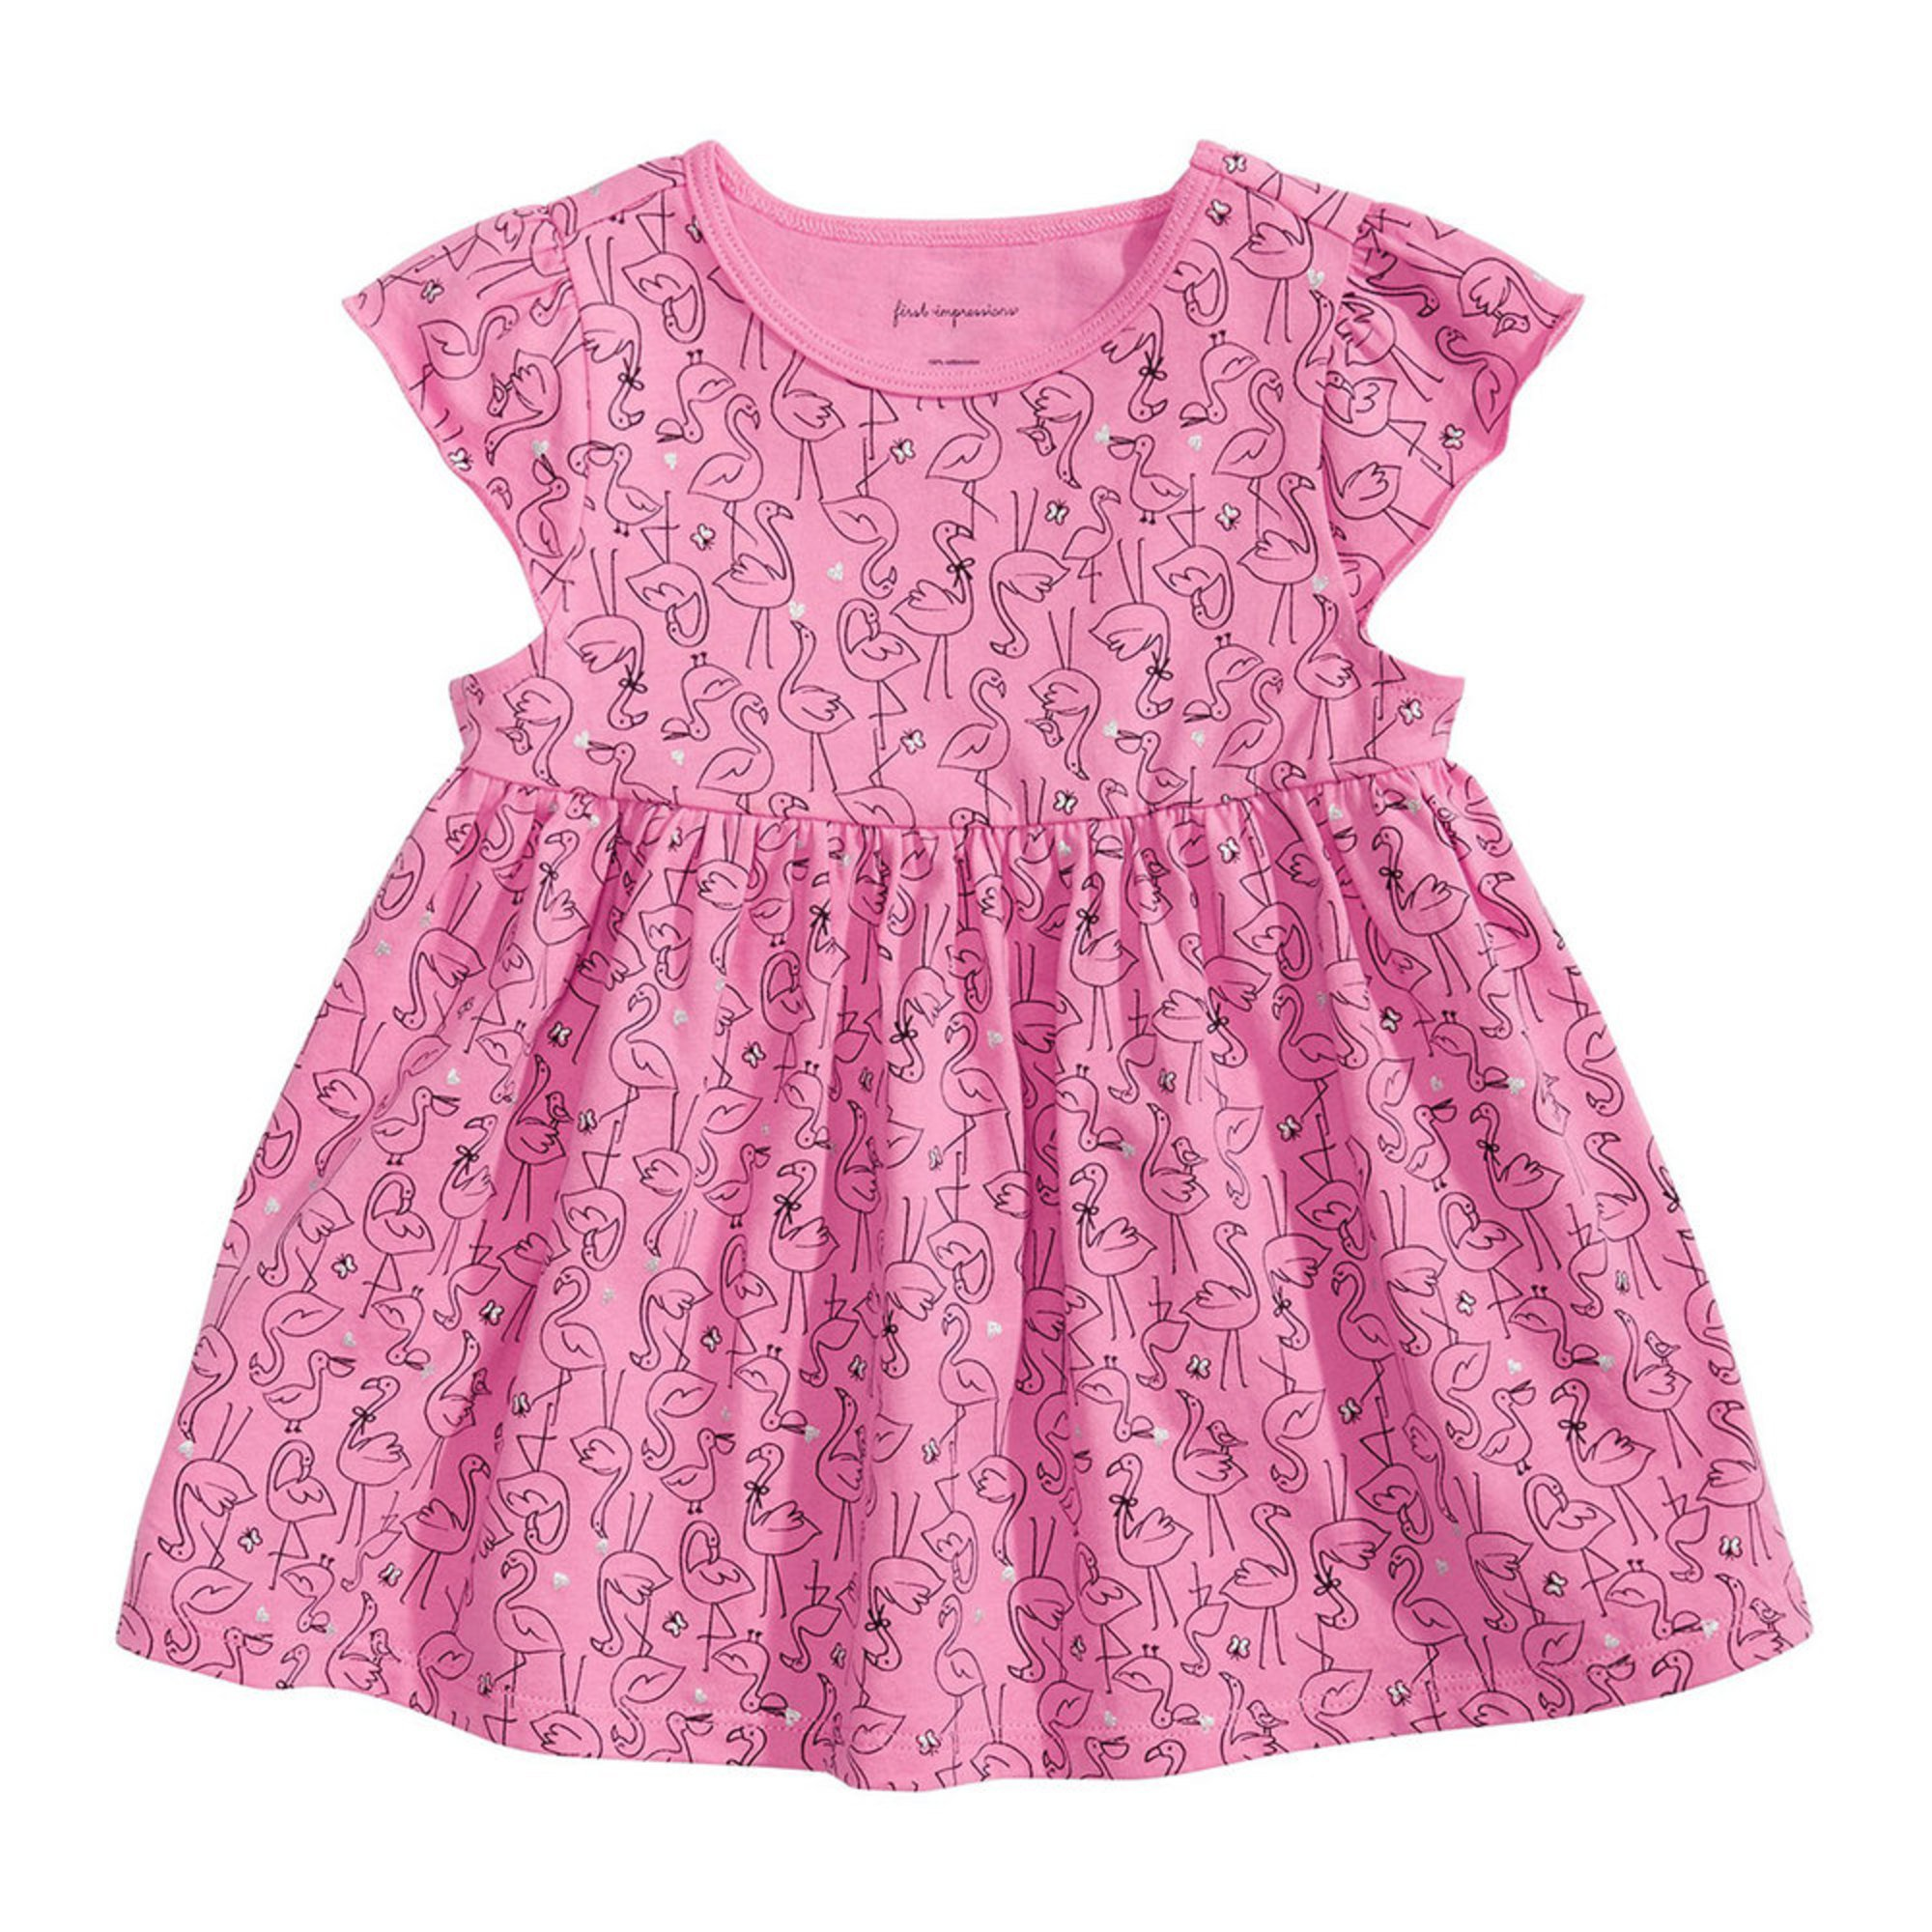 a889d633e First Impressions Baby Girls' Flamingo Tunic | Baby Girls' Tops ...